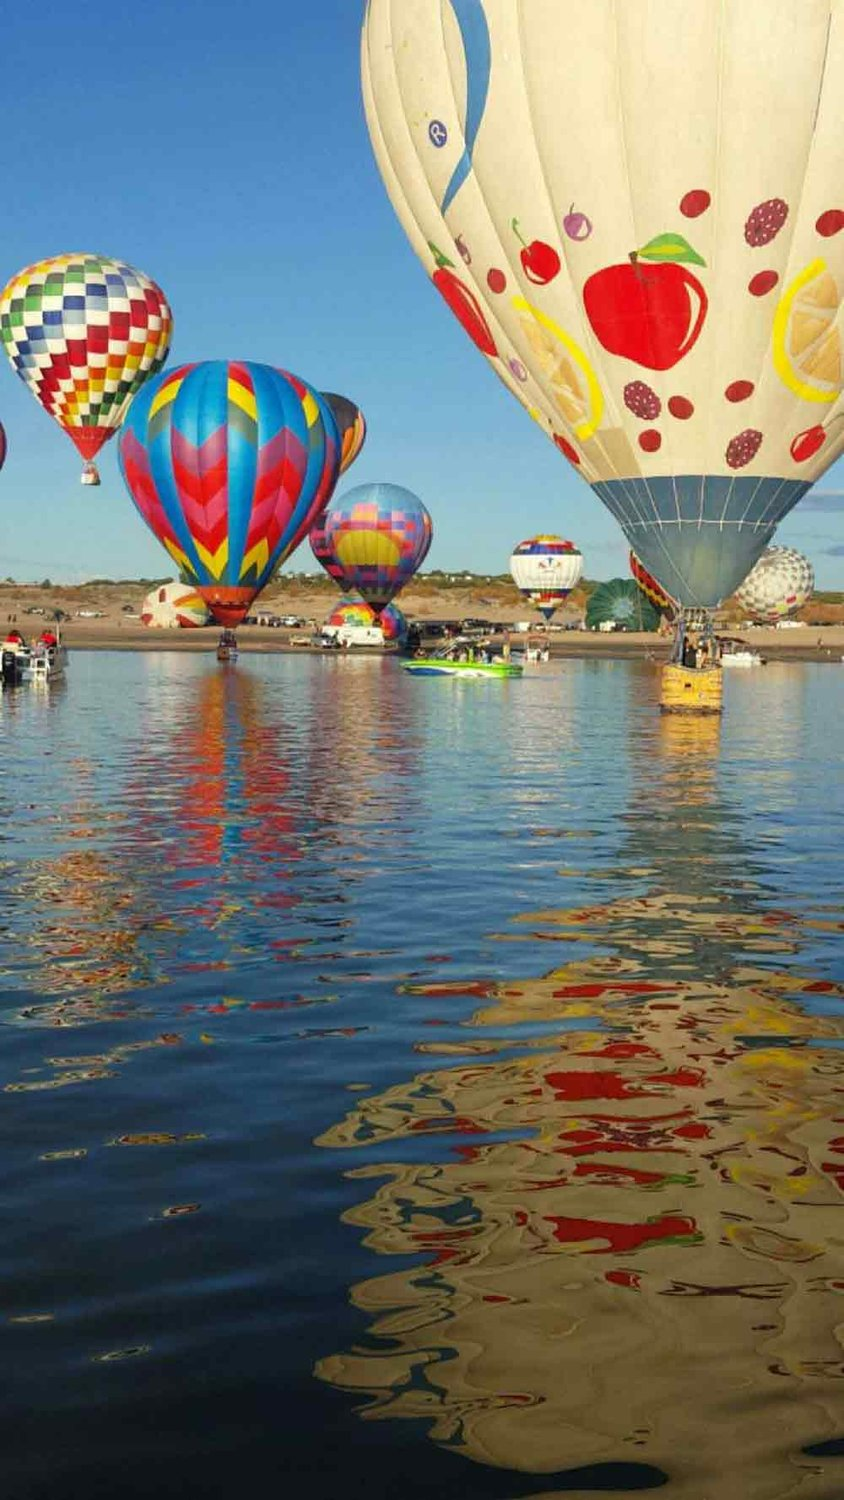 The Elephant Butte Lake Balloon Regatta takes place Sept. 15.